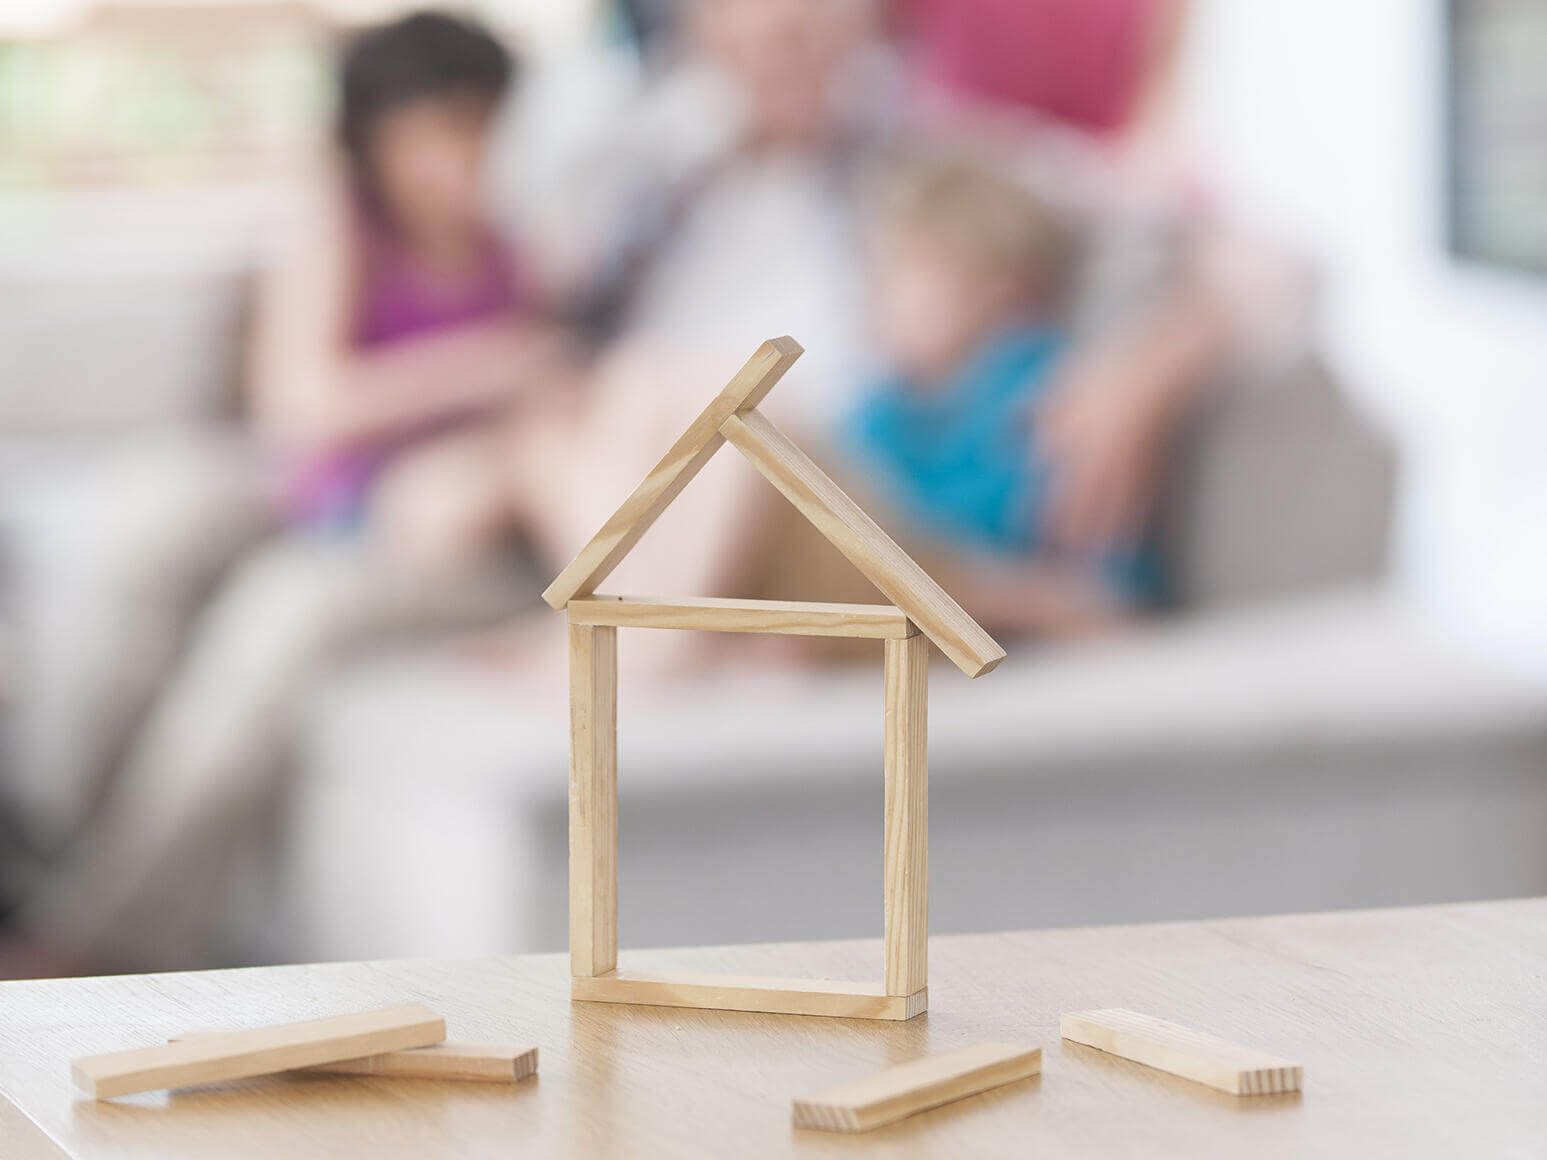 wooden sticks on table in shape of house with family blurred in background